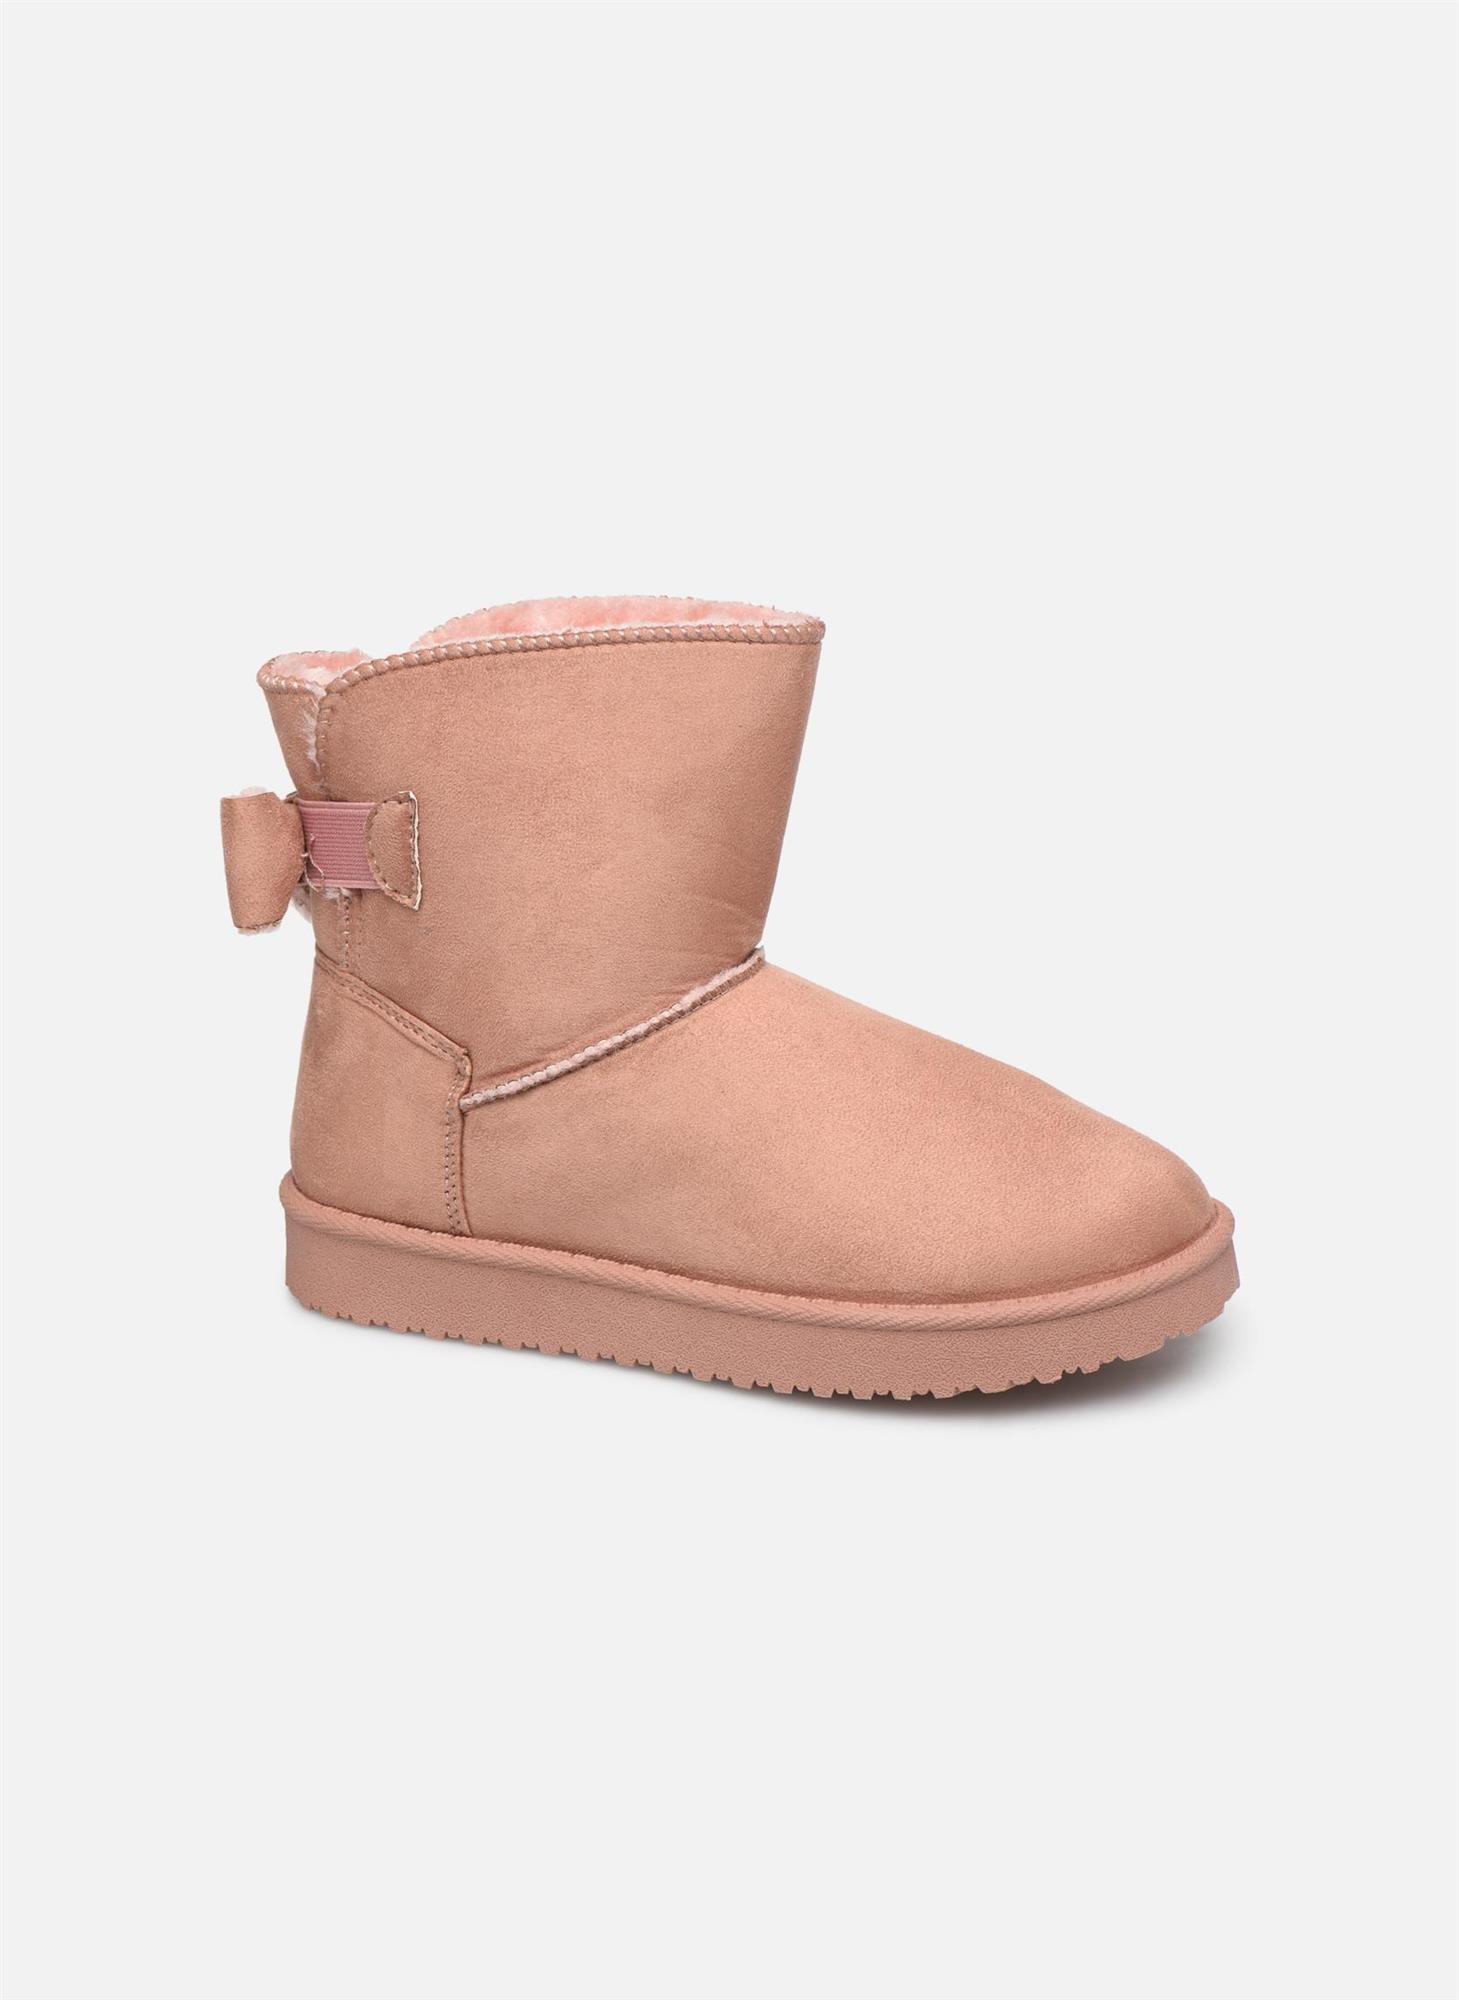 botas-thichibo. Botas forradas en rosa, de I Love Shoes